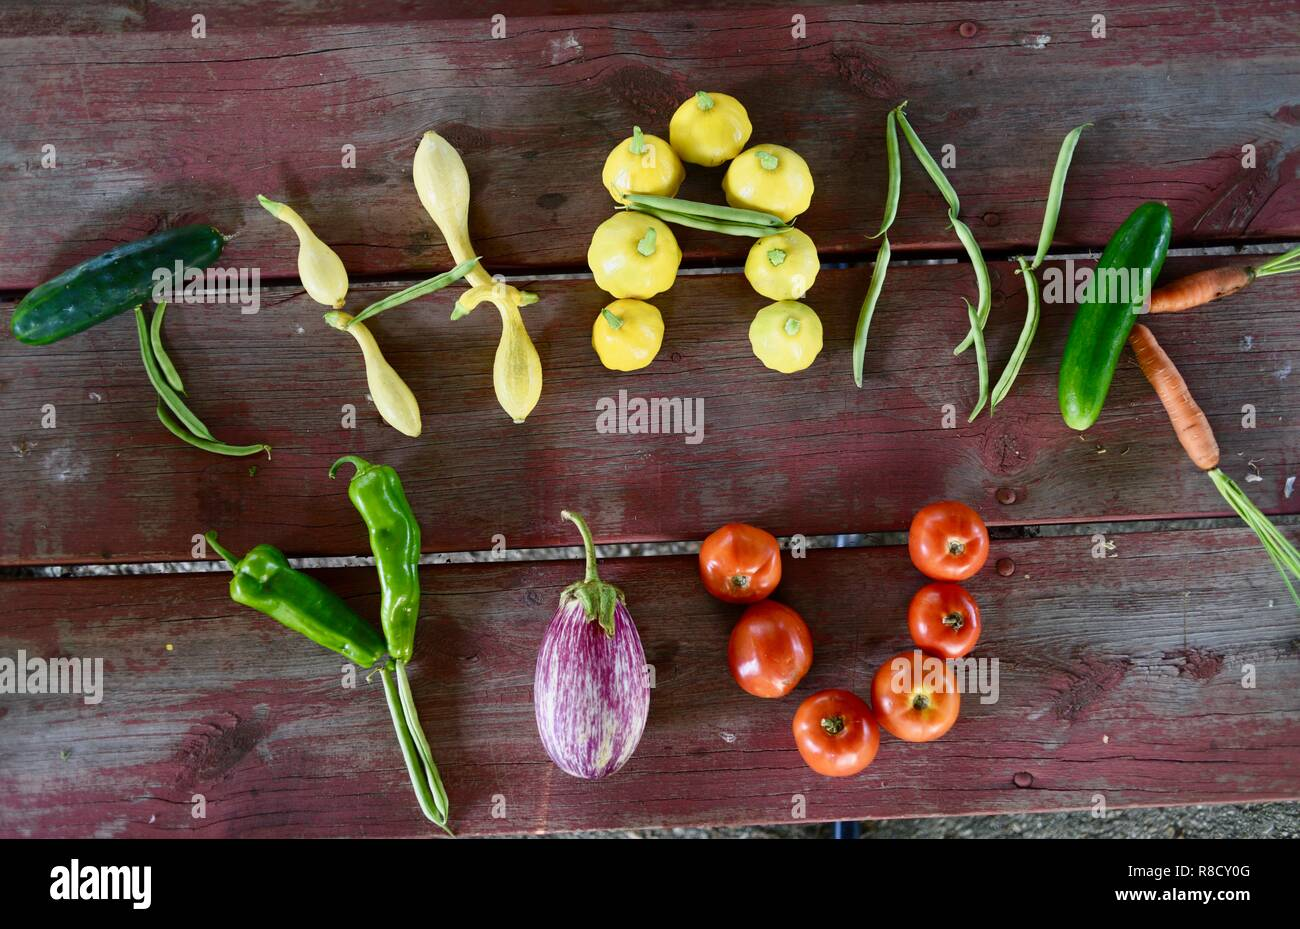 Organic vegetables and fruit spell out Thank You, for a healthy eating background focused on gratitude, on wooden picnic table. Top view. - Stock Image